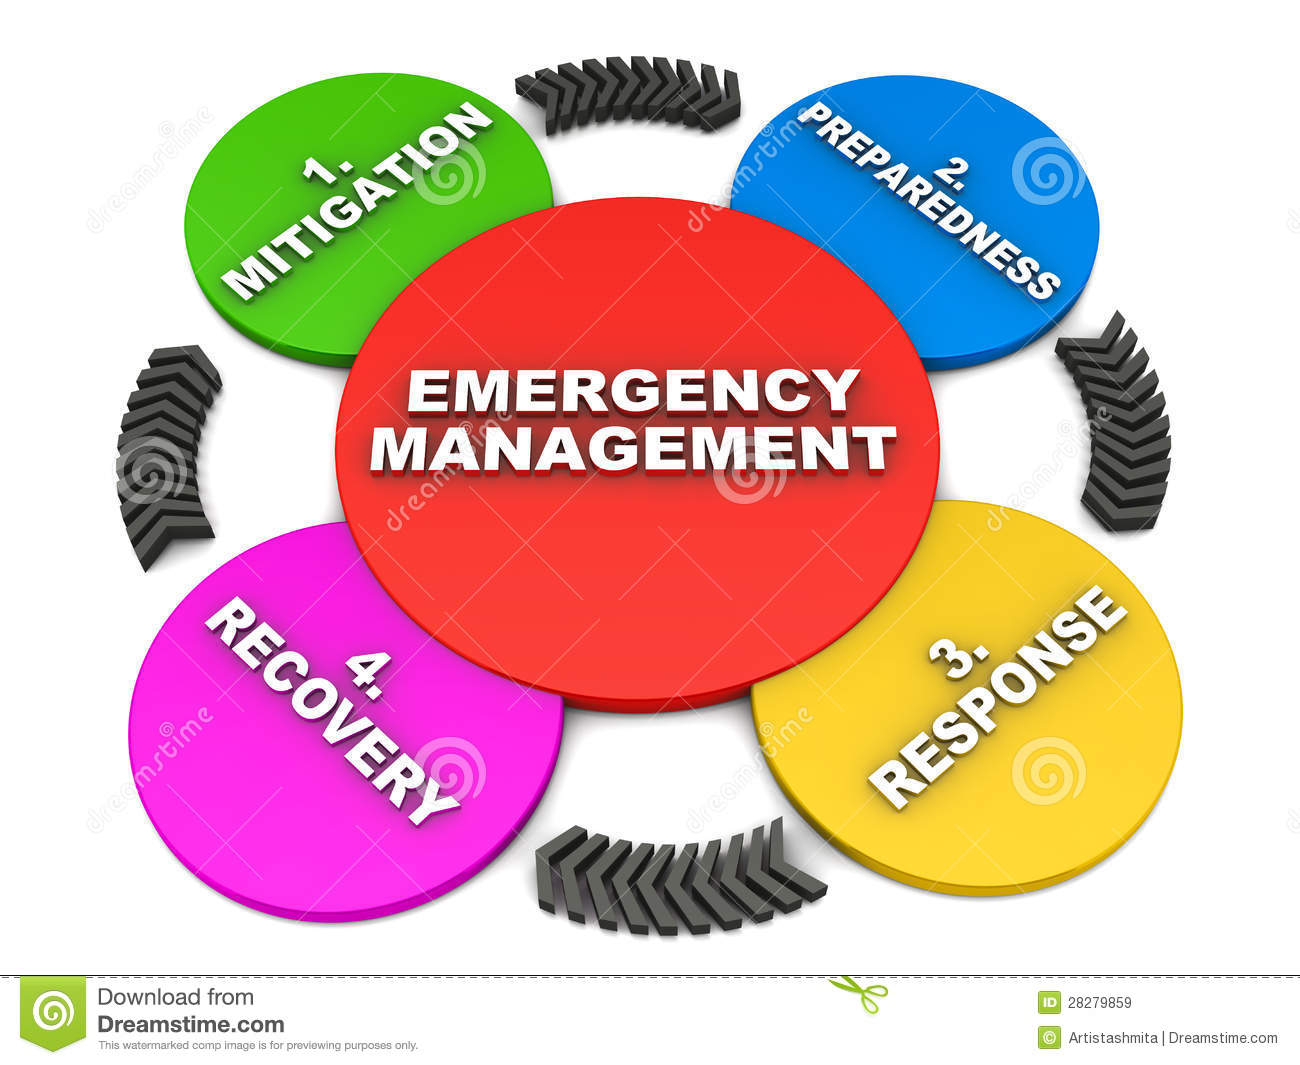 About disaster management